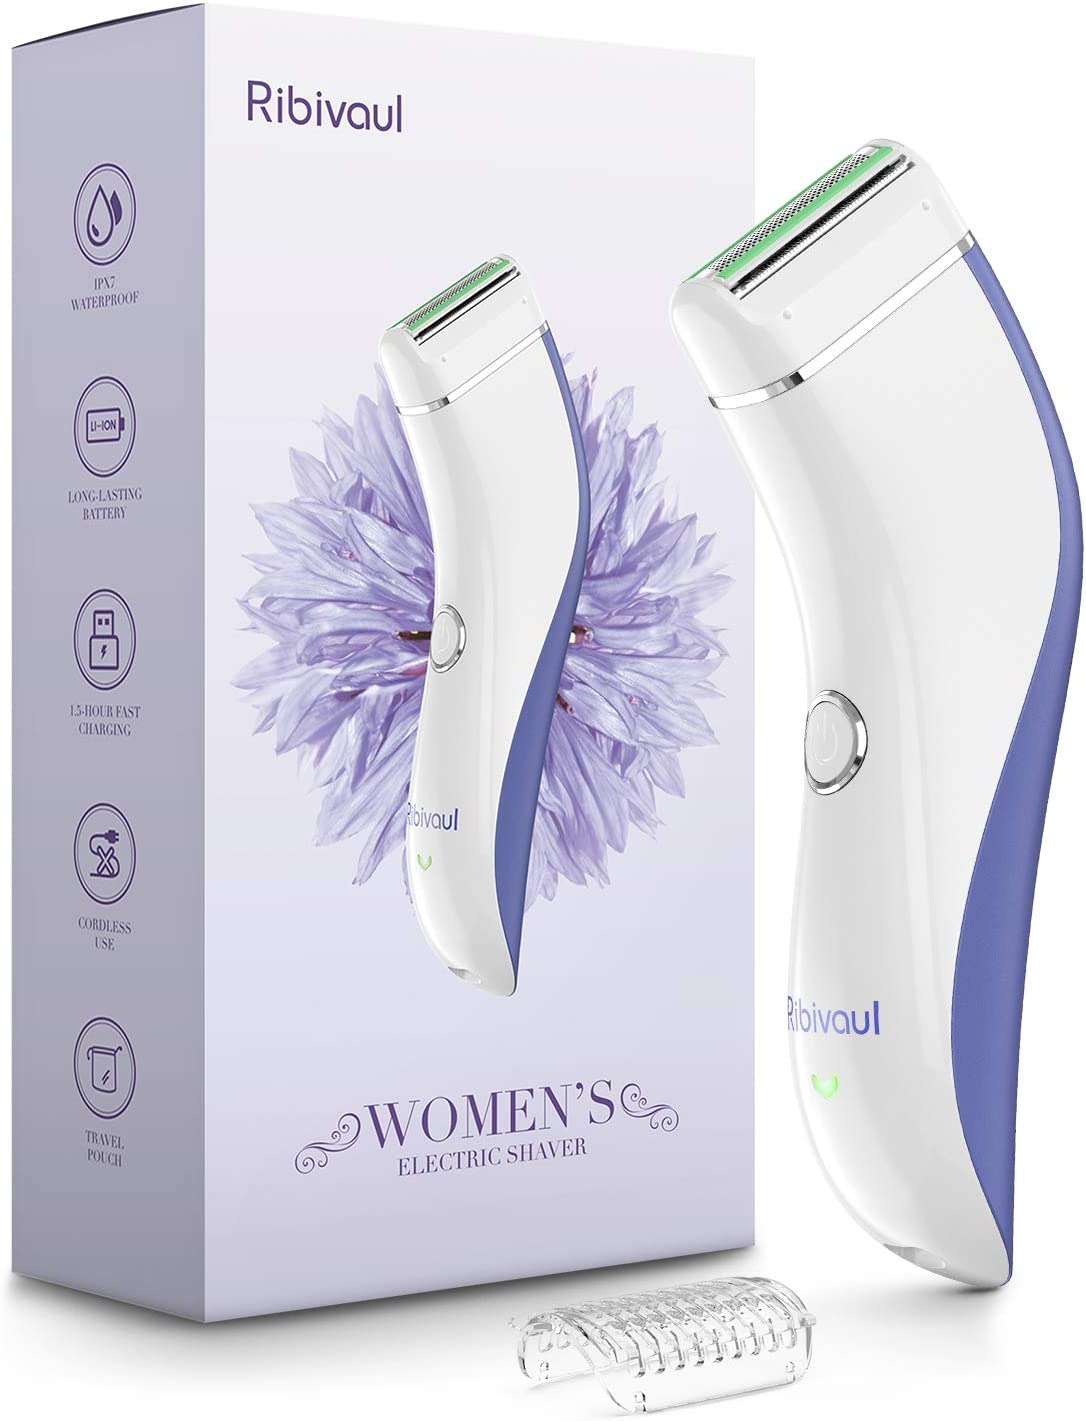 Women Electric Razor, Ribivaul Electric Shaver for Women with 3-1 Shaving Blade, Fast Charging Cordless Women Bikini Trimmer with Long Battery Life, Waterproof Lady Electric Razor for Wet and Dry Use